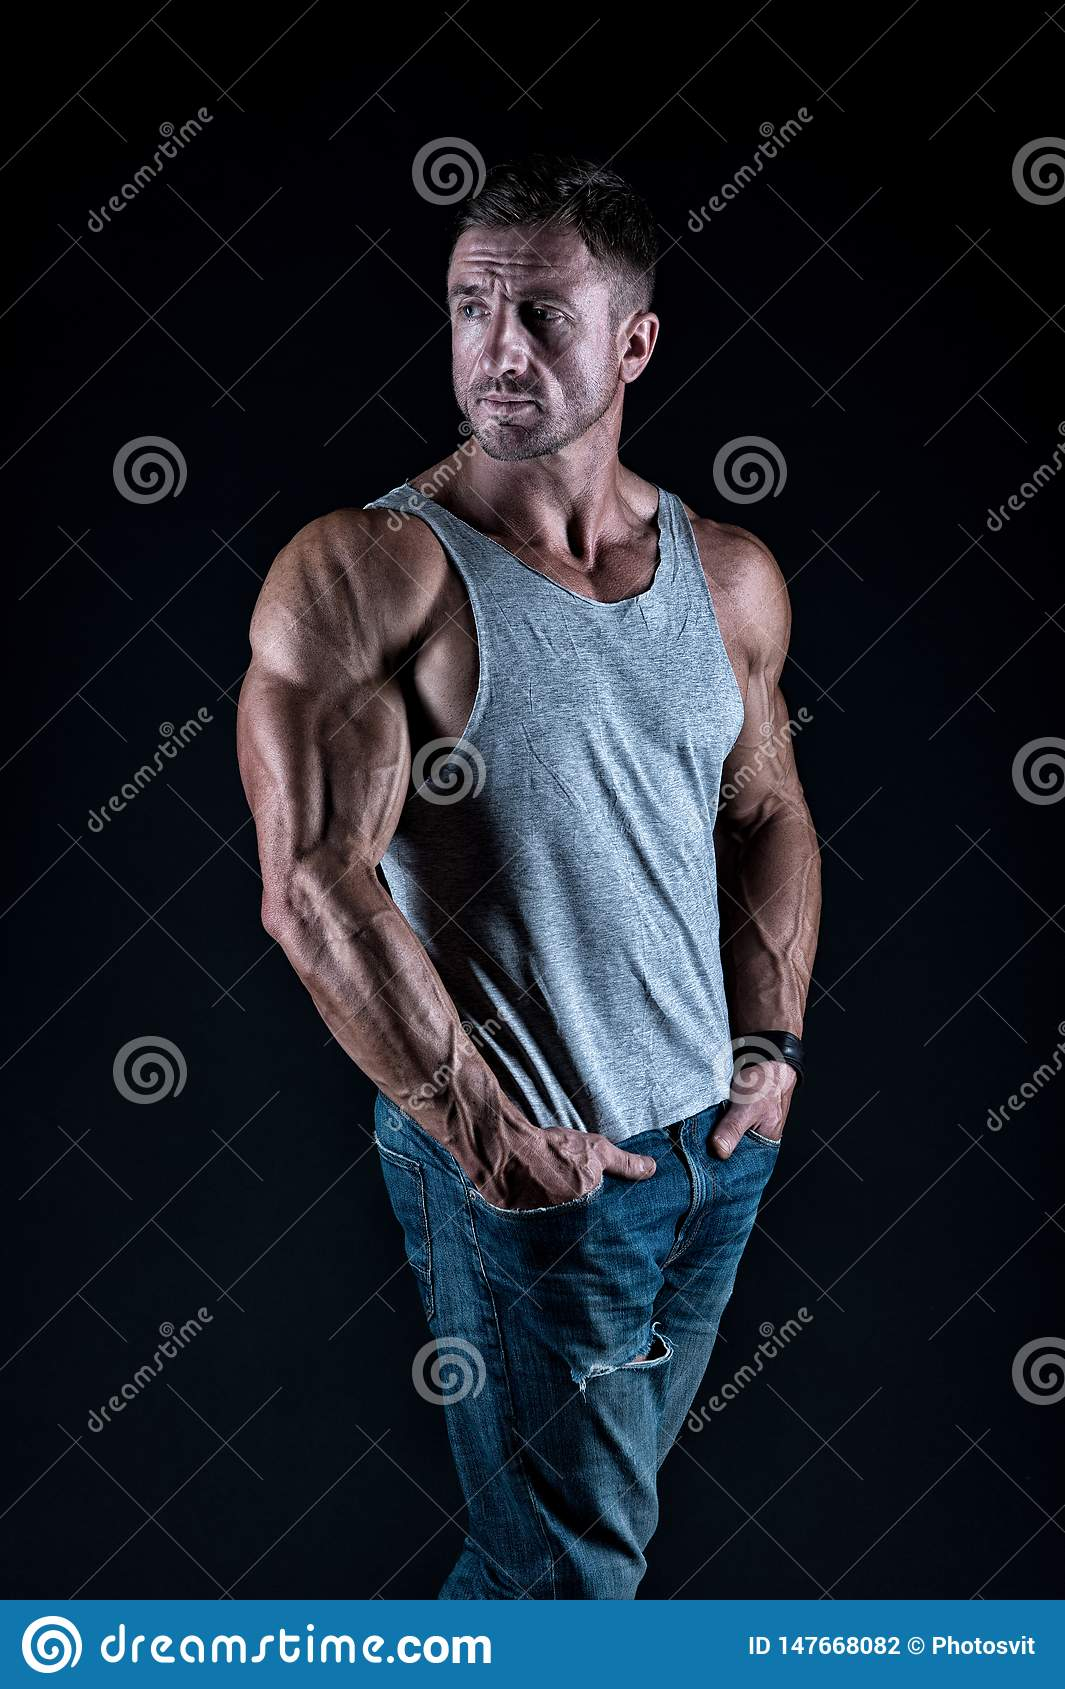 Mature sportsman. Bodybuilding concept. Strong athletic fitness man. Bodybuilding training. Strength and motivation